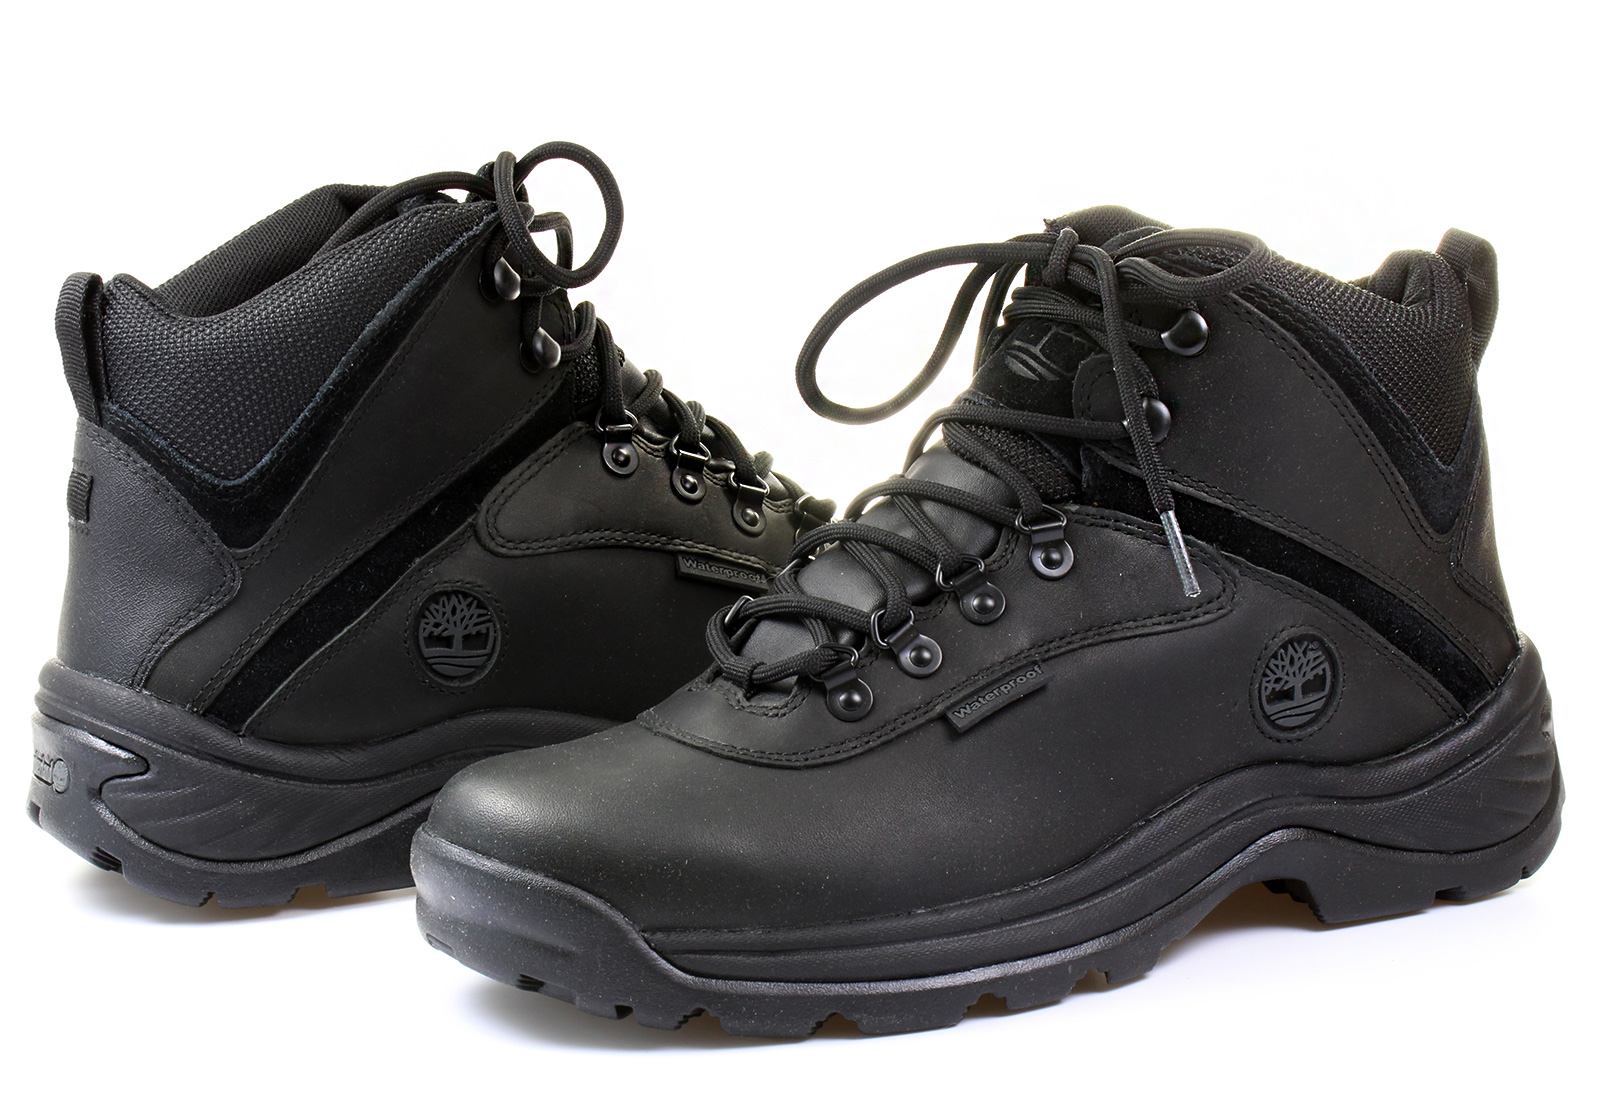 Timberland Boots - White Ledge - 12122-BLK - Online shop for sneakers, shoes and boots